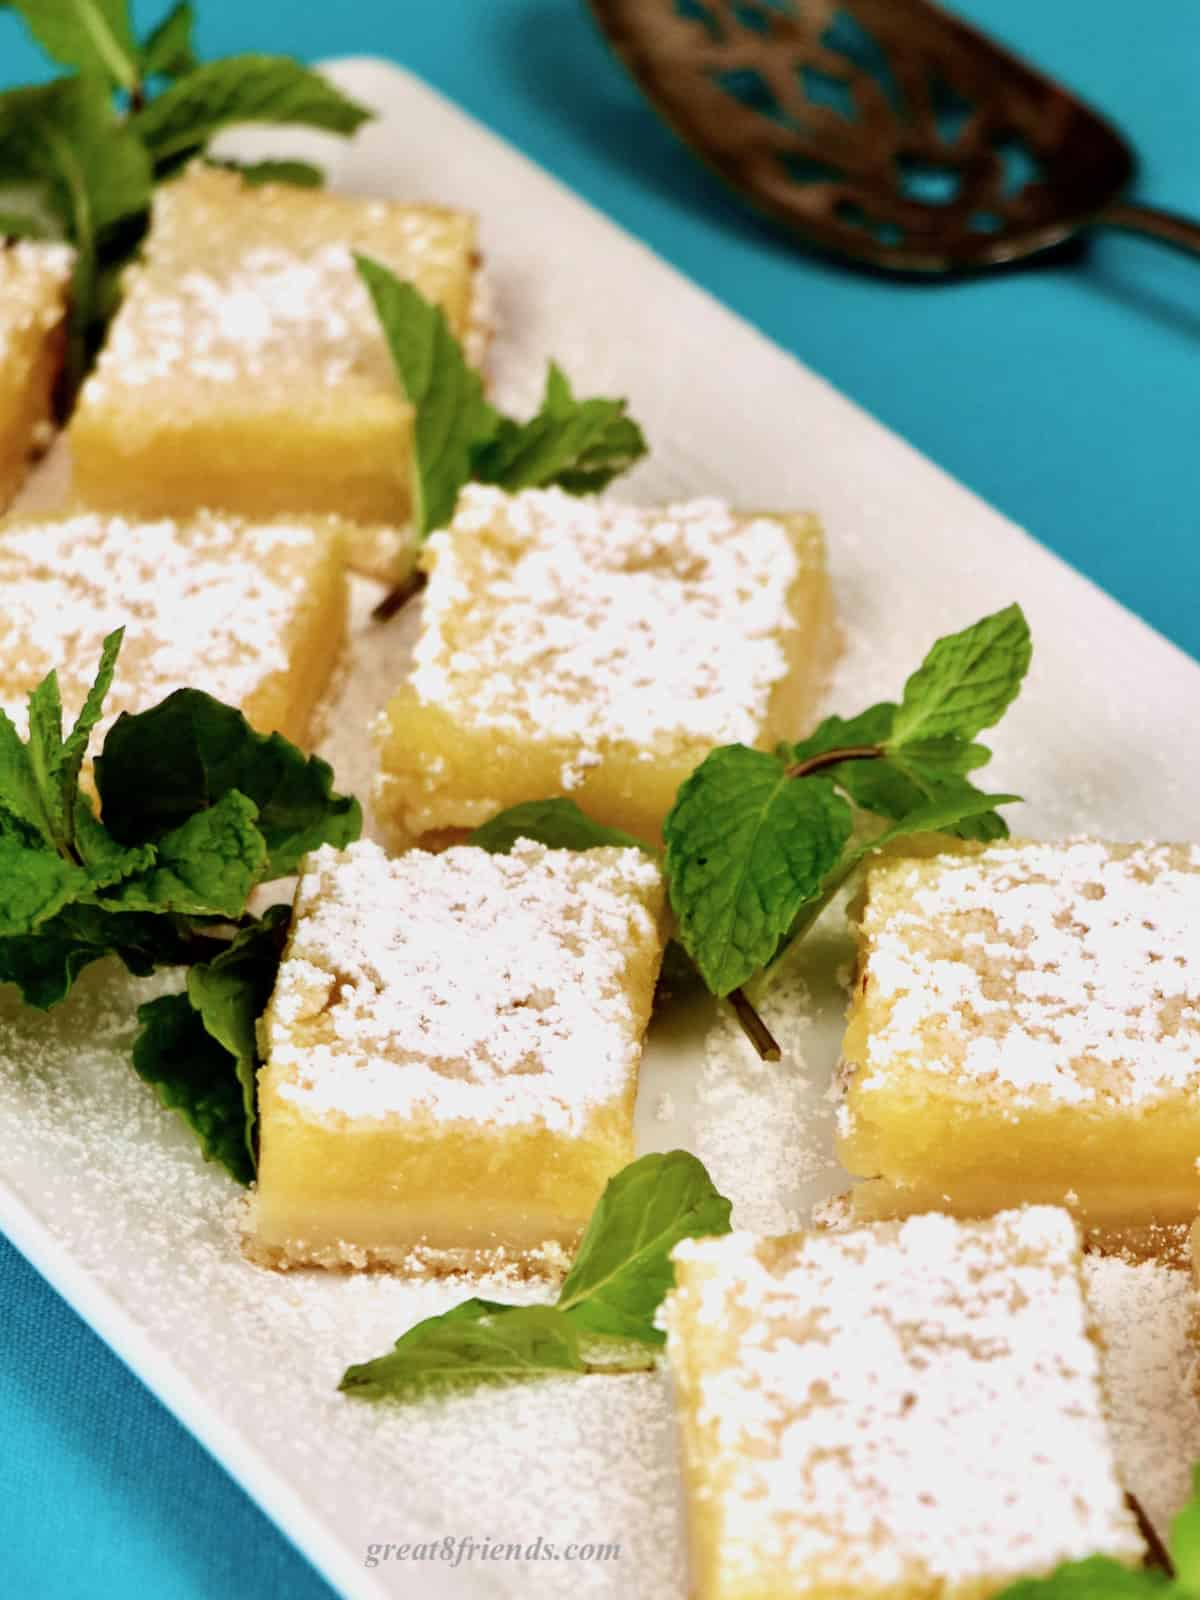 Lemon bars on white tray garnished with mint leaves.